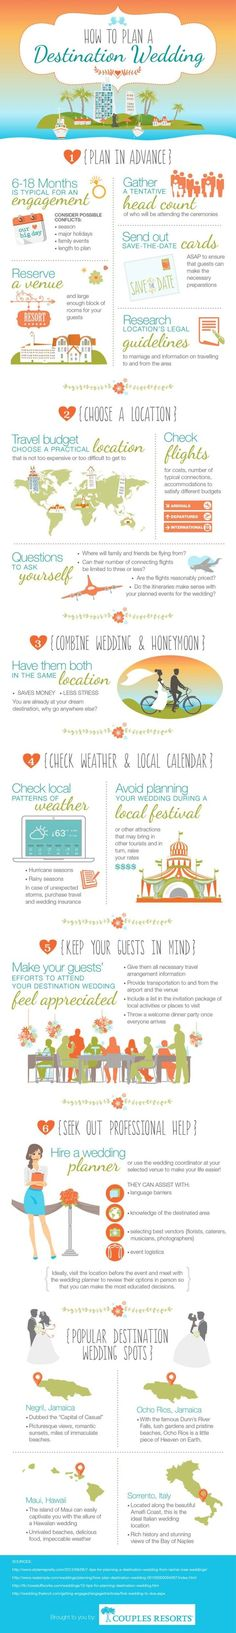 5. Destination Wedding Planning – Just about everything you should know is right here in this guide from Couples Resort.